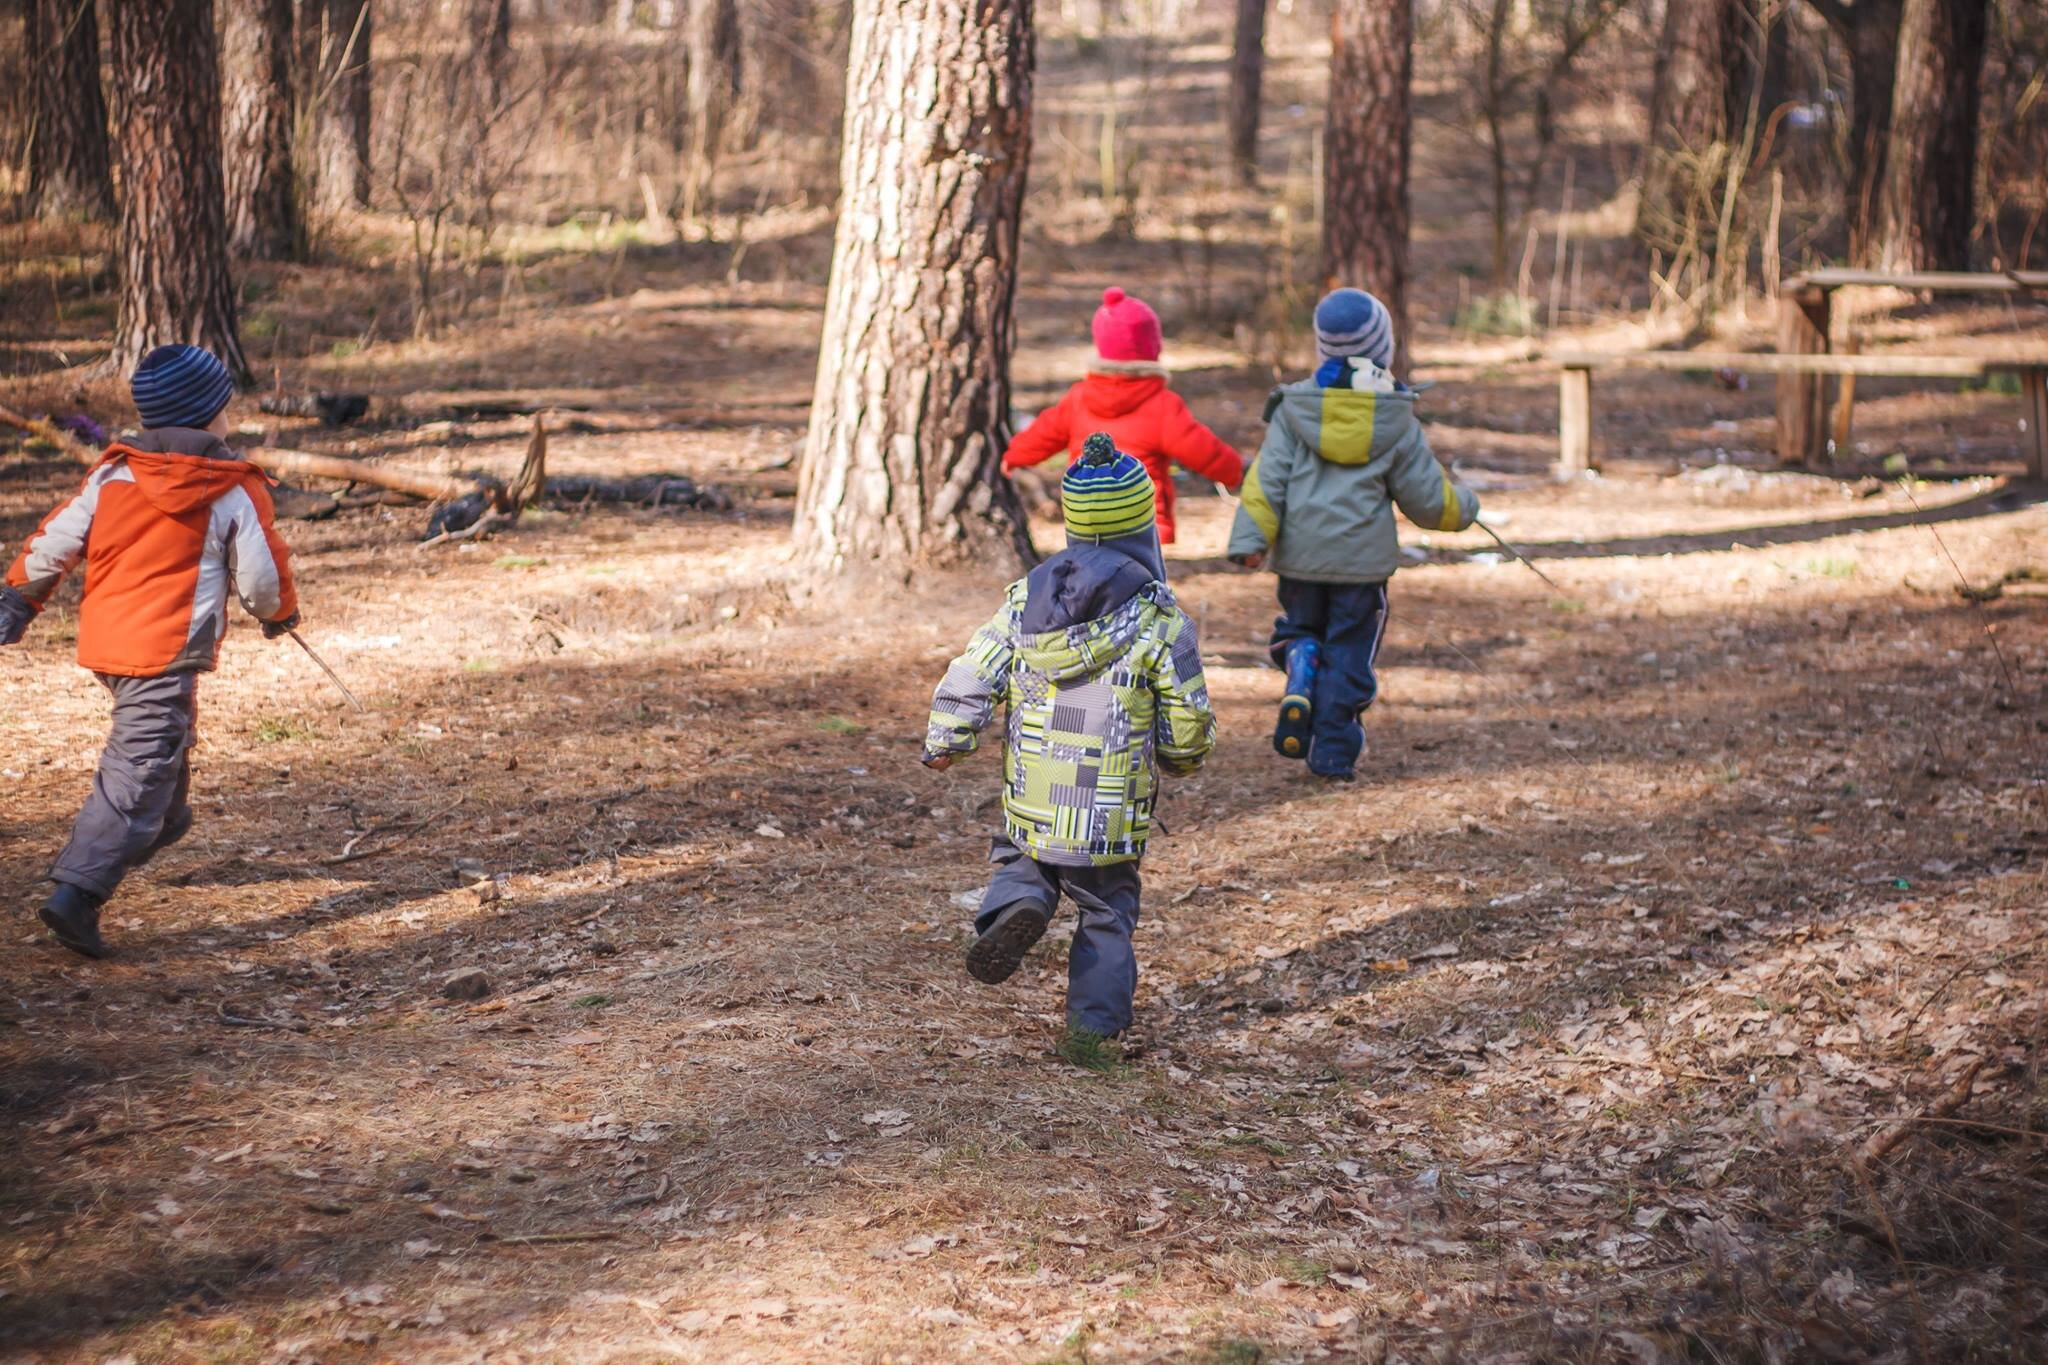 Why it's so important that children play outdoors